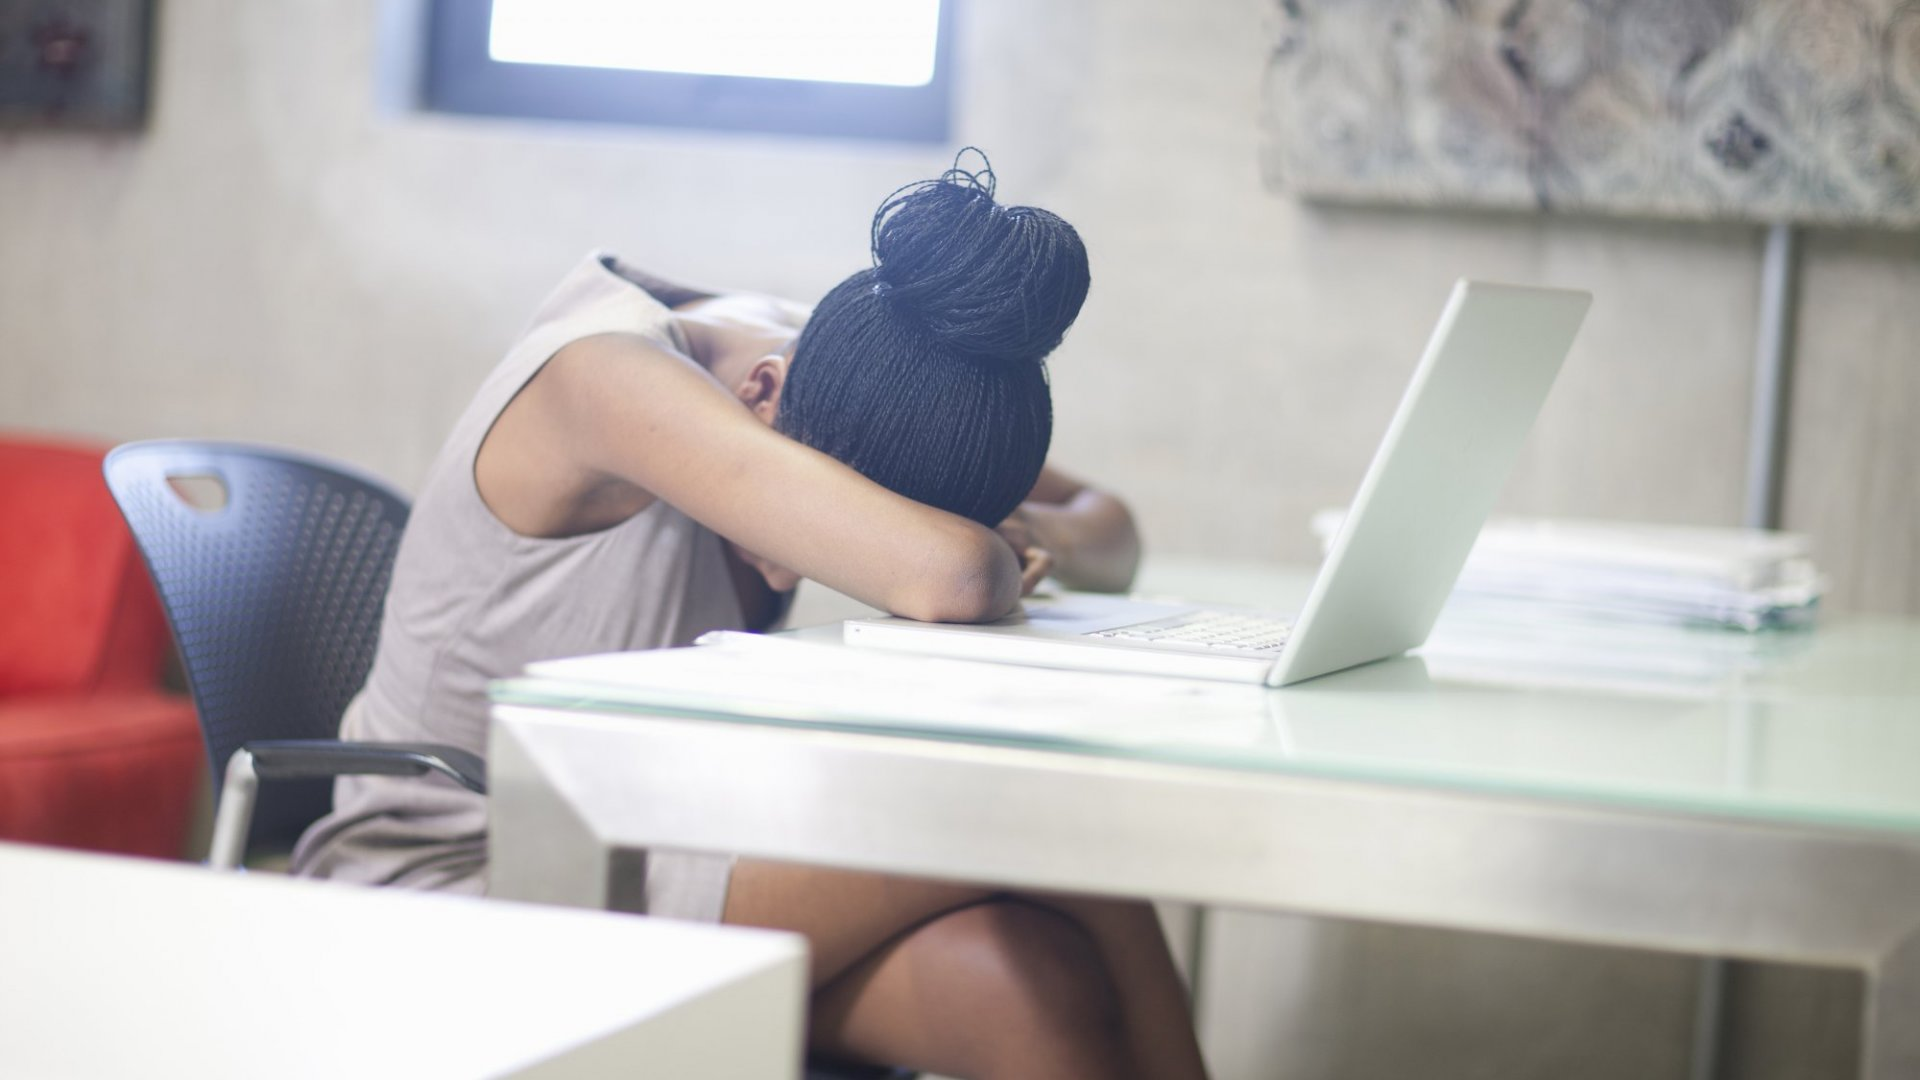 Trapped in a Dead-End Job? Here's an Emotionally Intelligent Solution